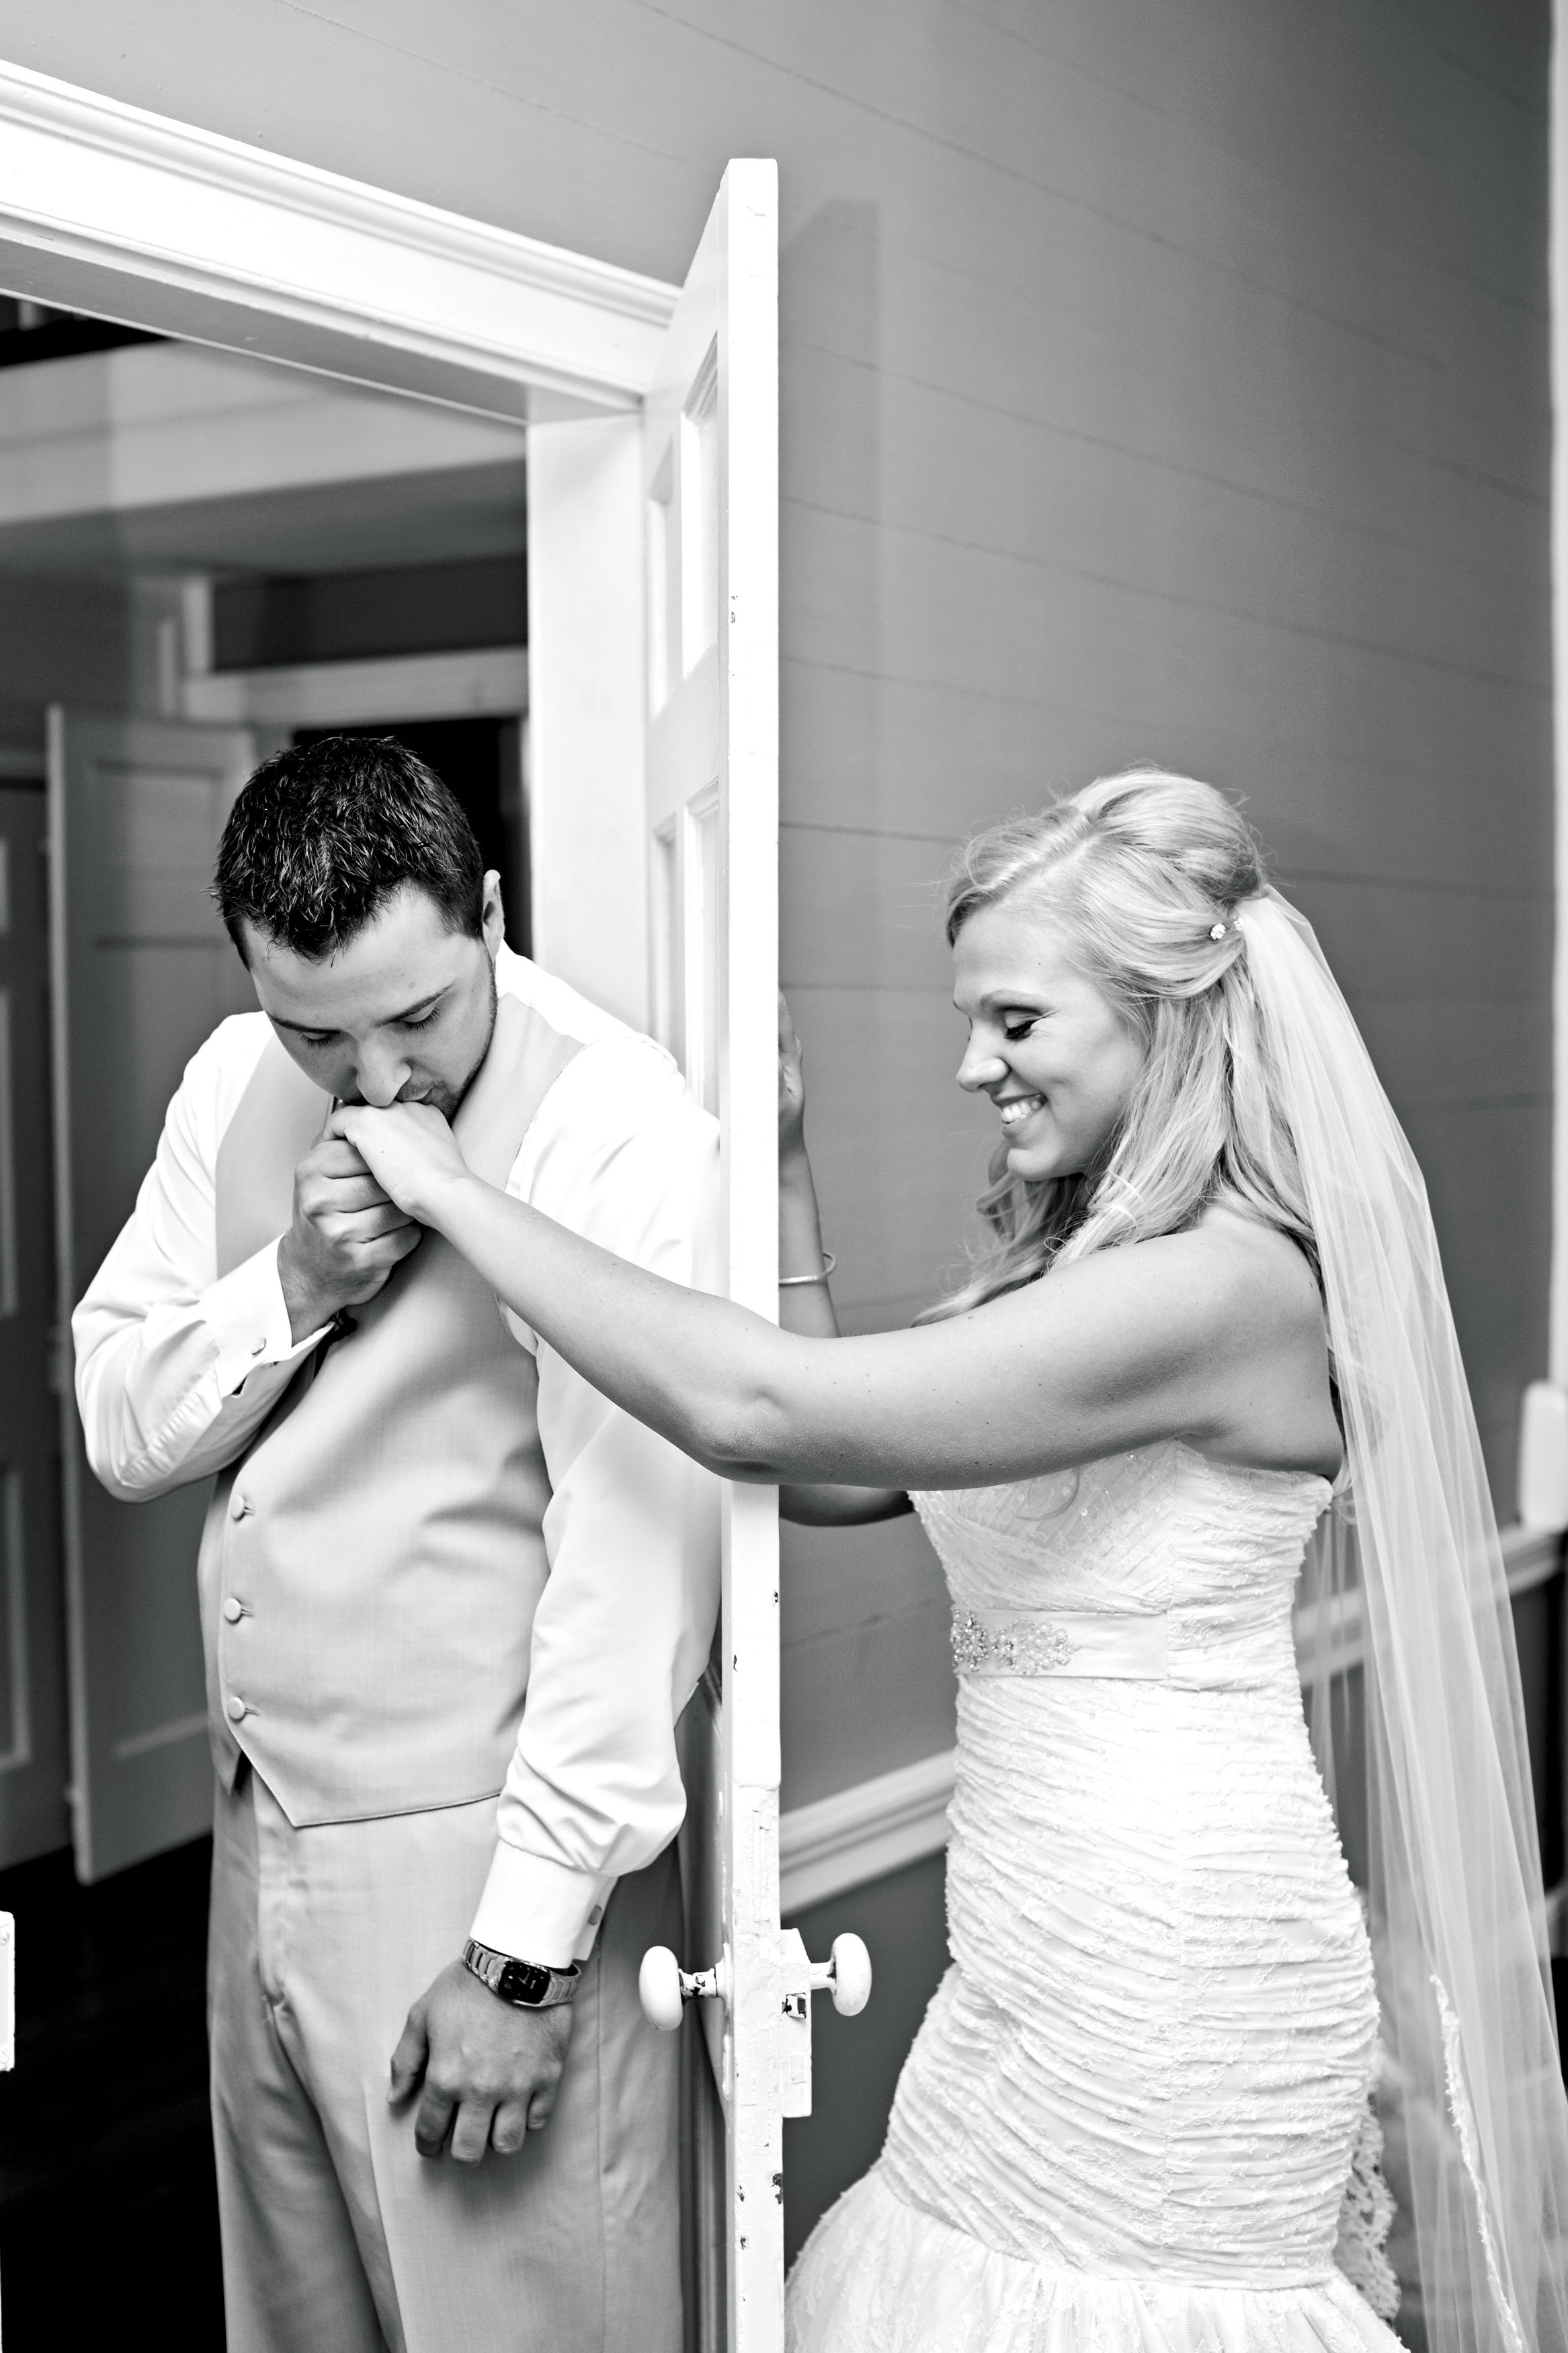 Calming the brides nerves before her walk down the aisle.